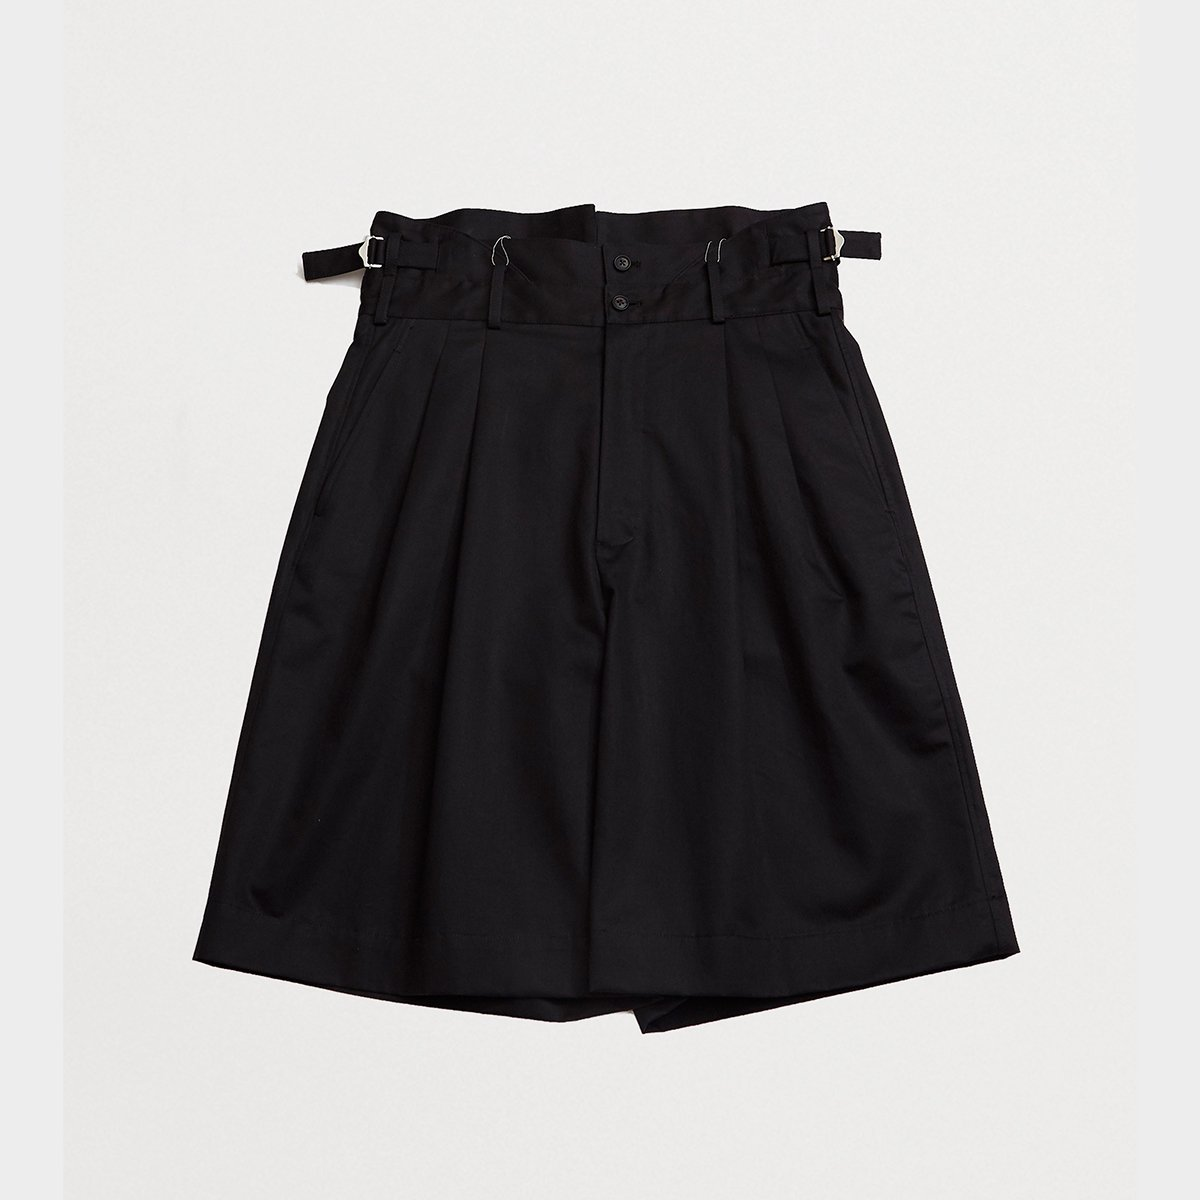 <img class='new_mark_img1' src='https://img.shop-pro.jp/img/new/icons5.gif' style='border:none;display:inline;margin:0px;padding:0px;width:auto;' />HIGH WAIST SHORTS / BLACK